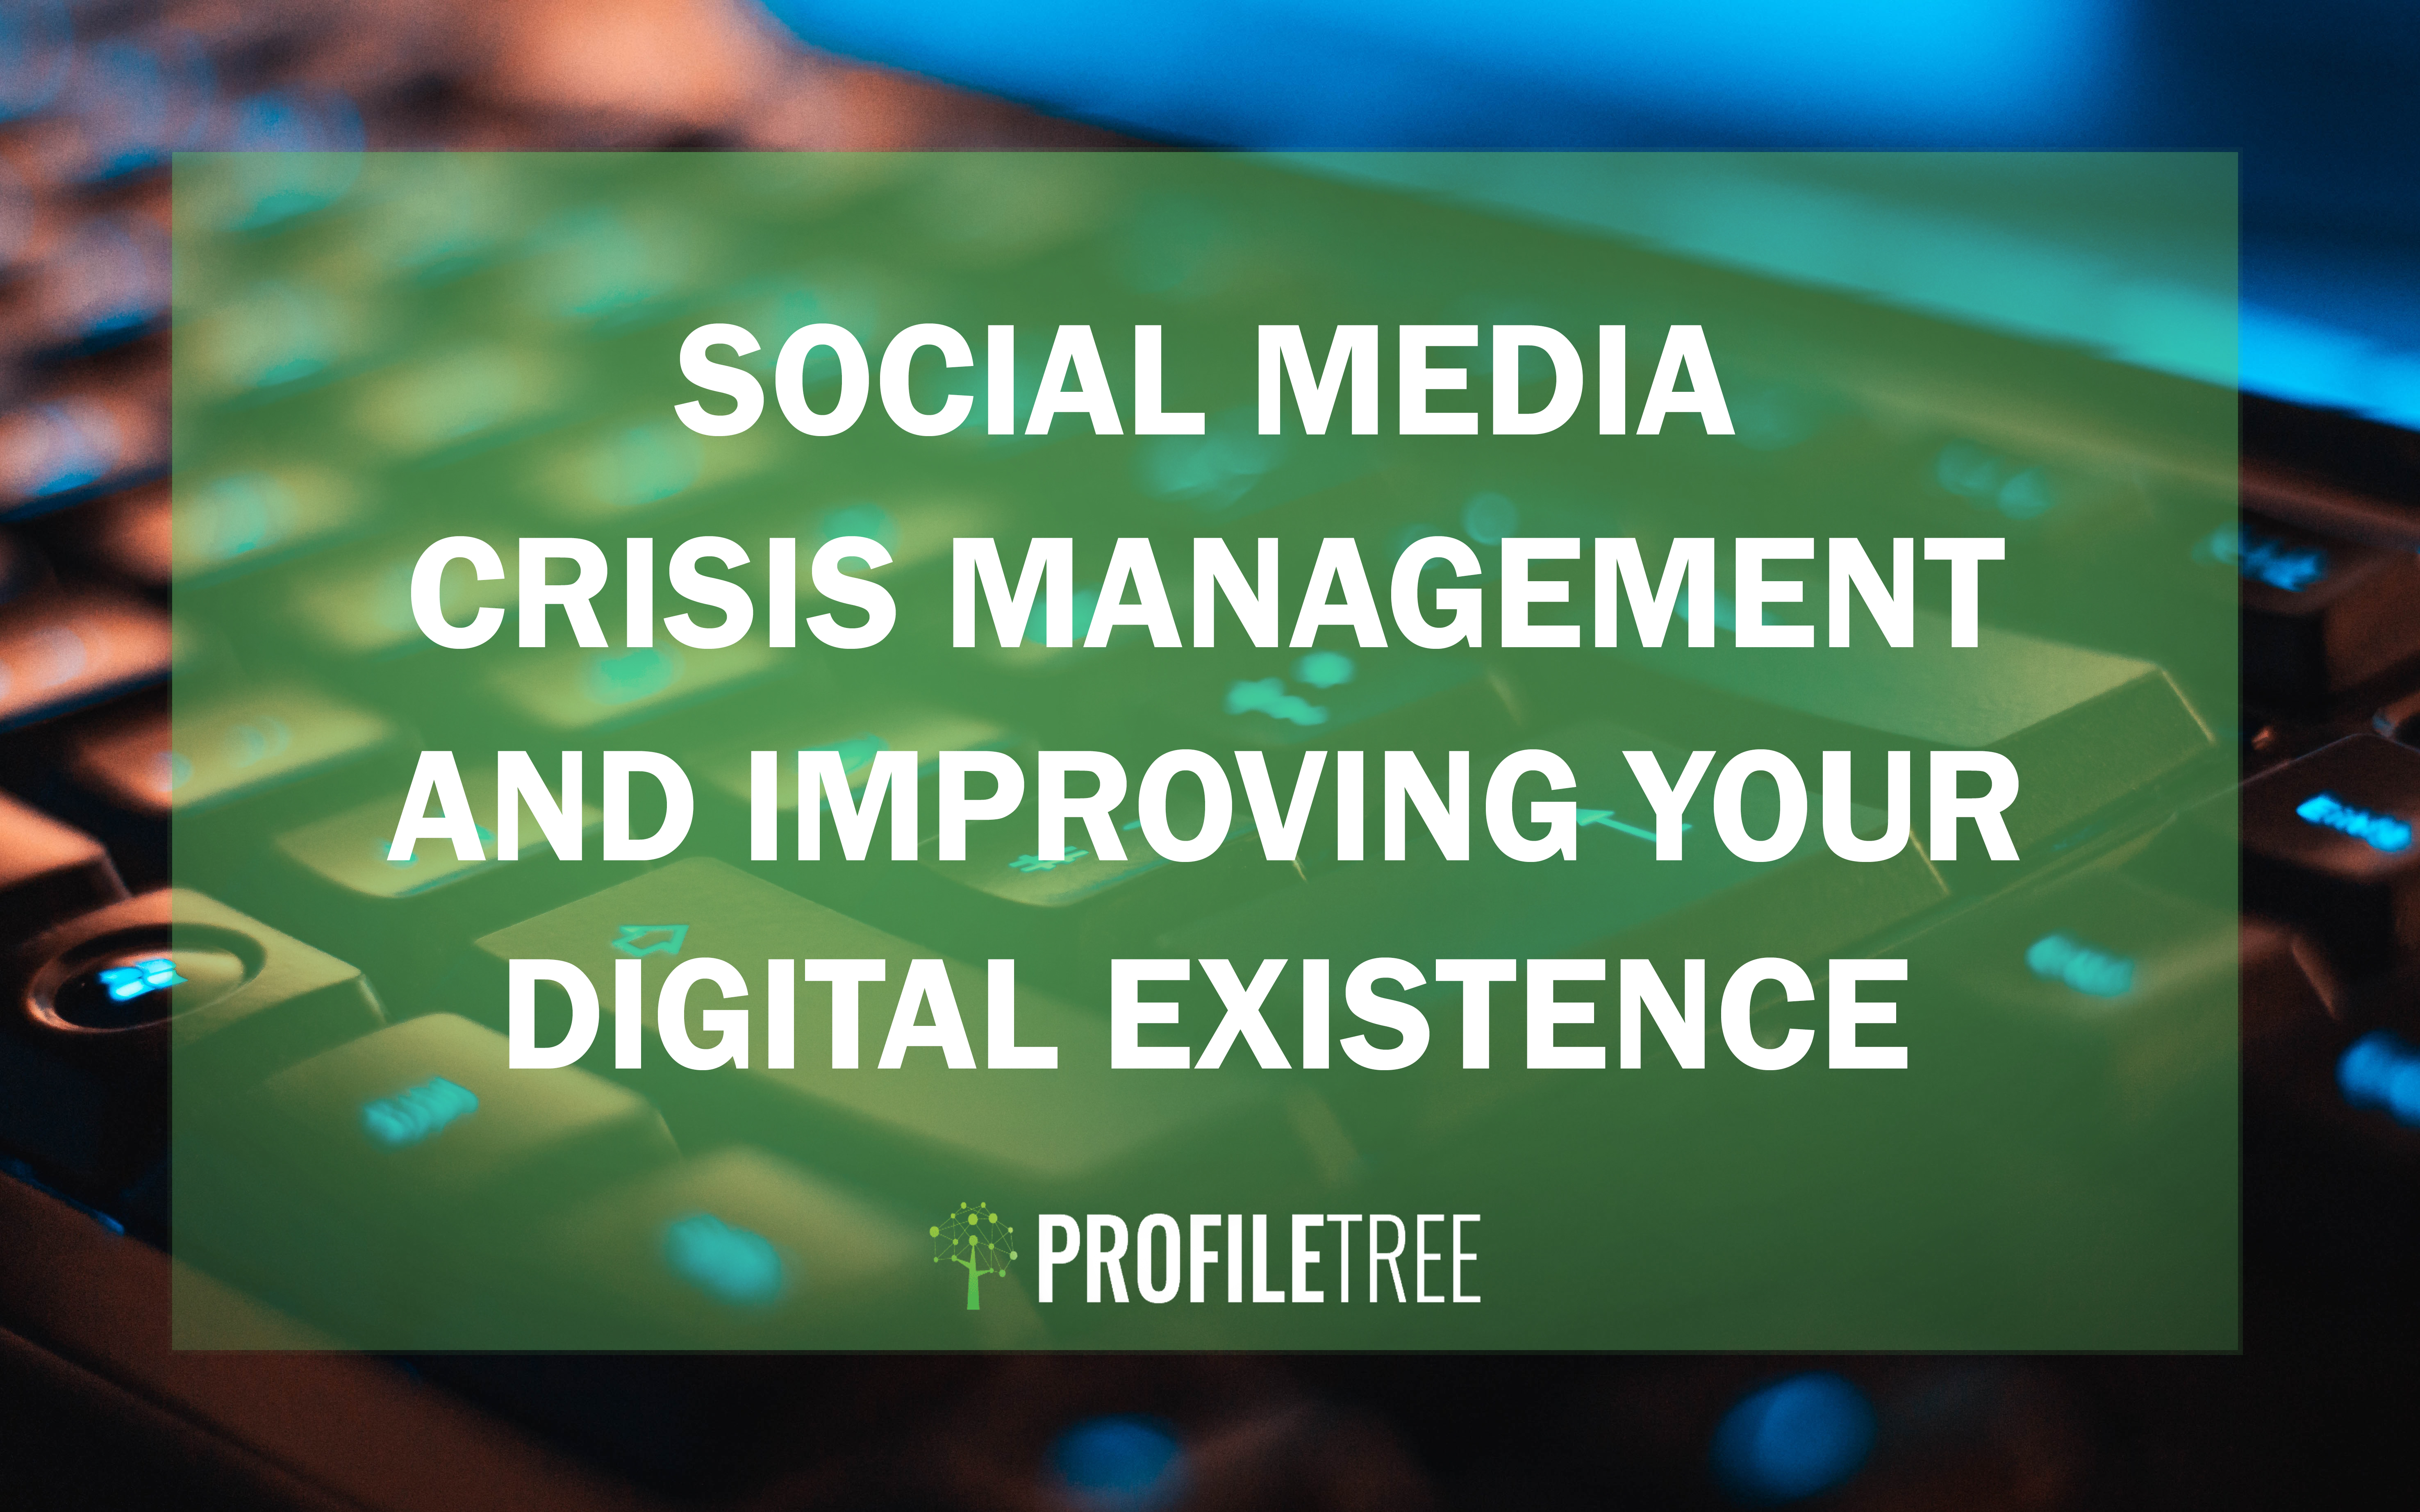 Social Media Crisis Management Featured Image